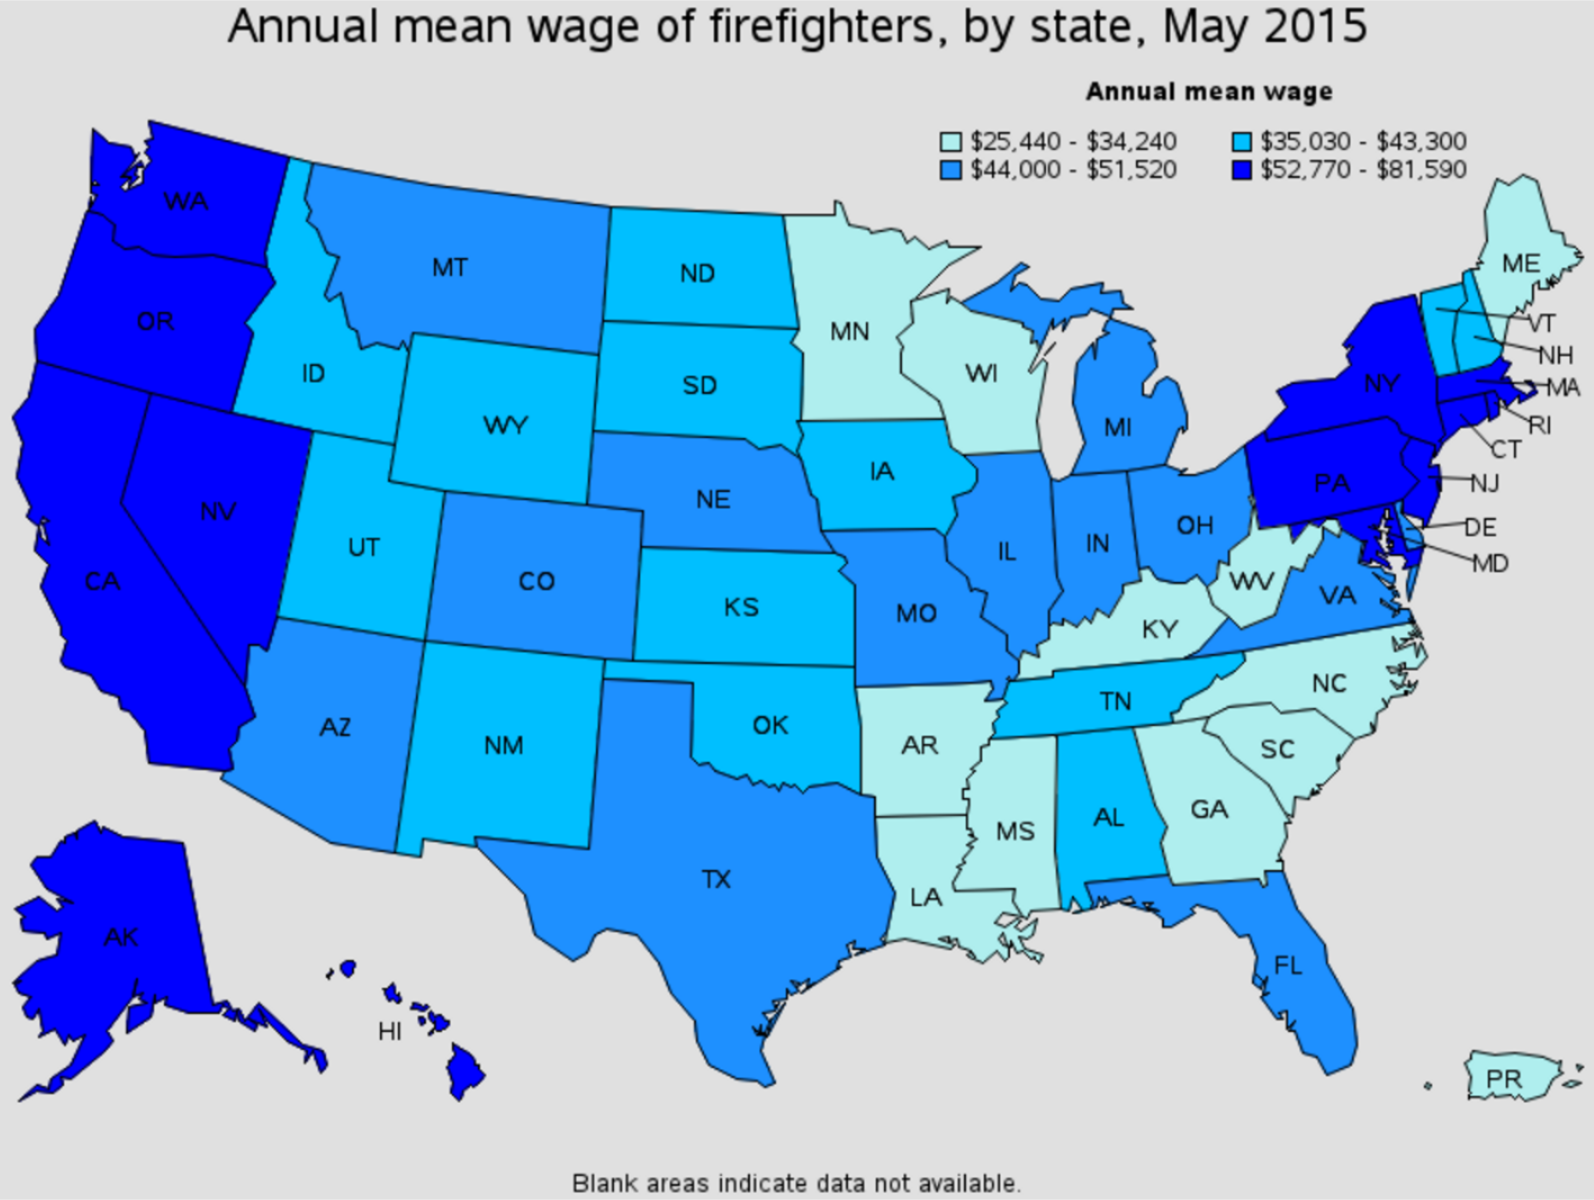 firefighter average salary by state Winlock Washington